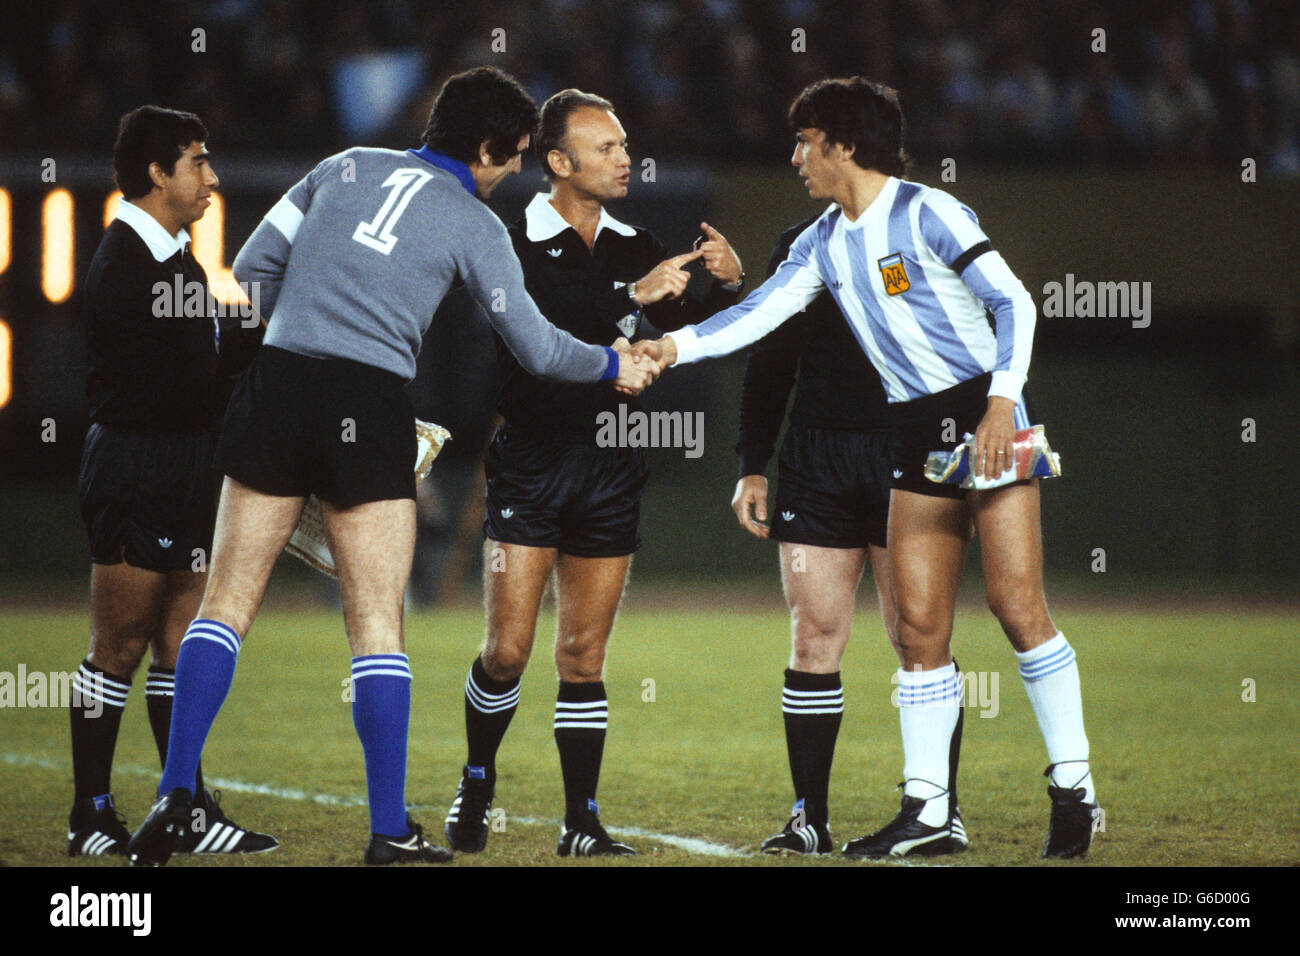 Soccer - FIFA World Cup Argentina 1978 - Group 1 - Italy v ...